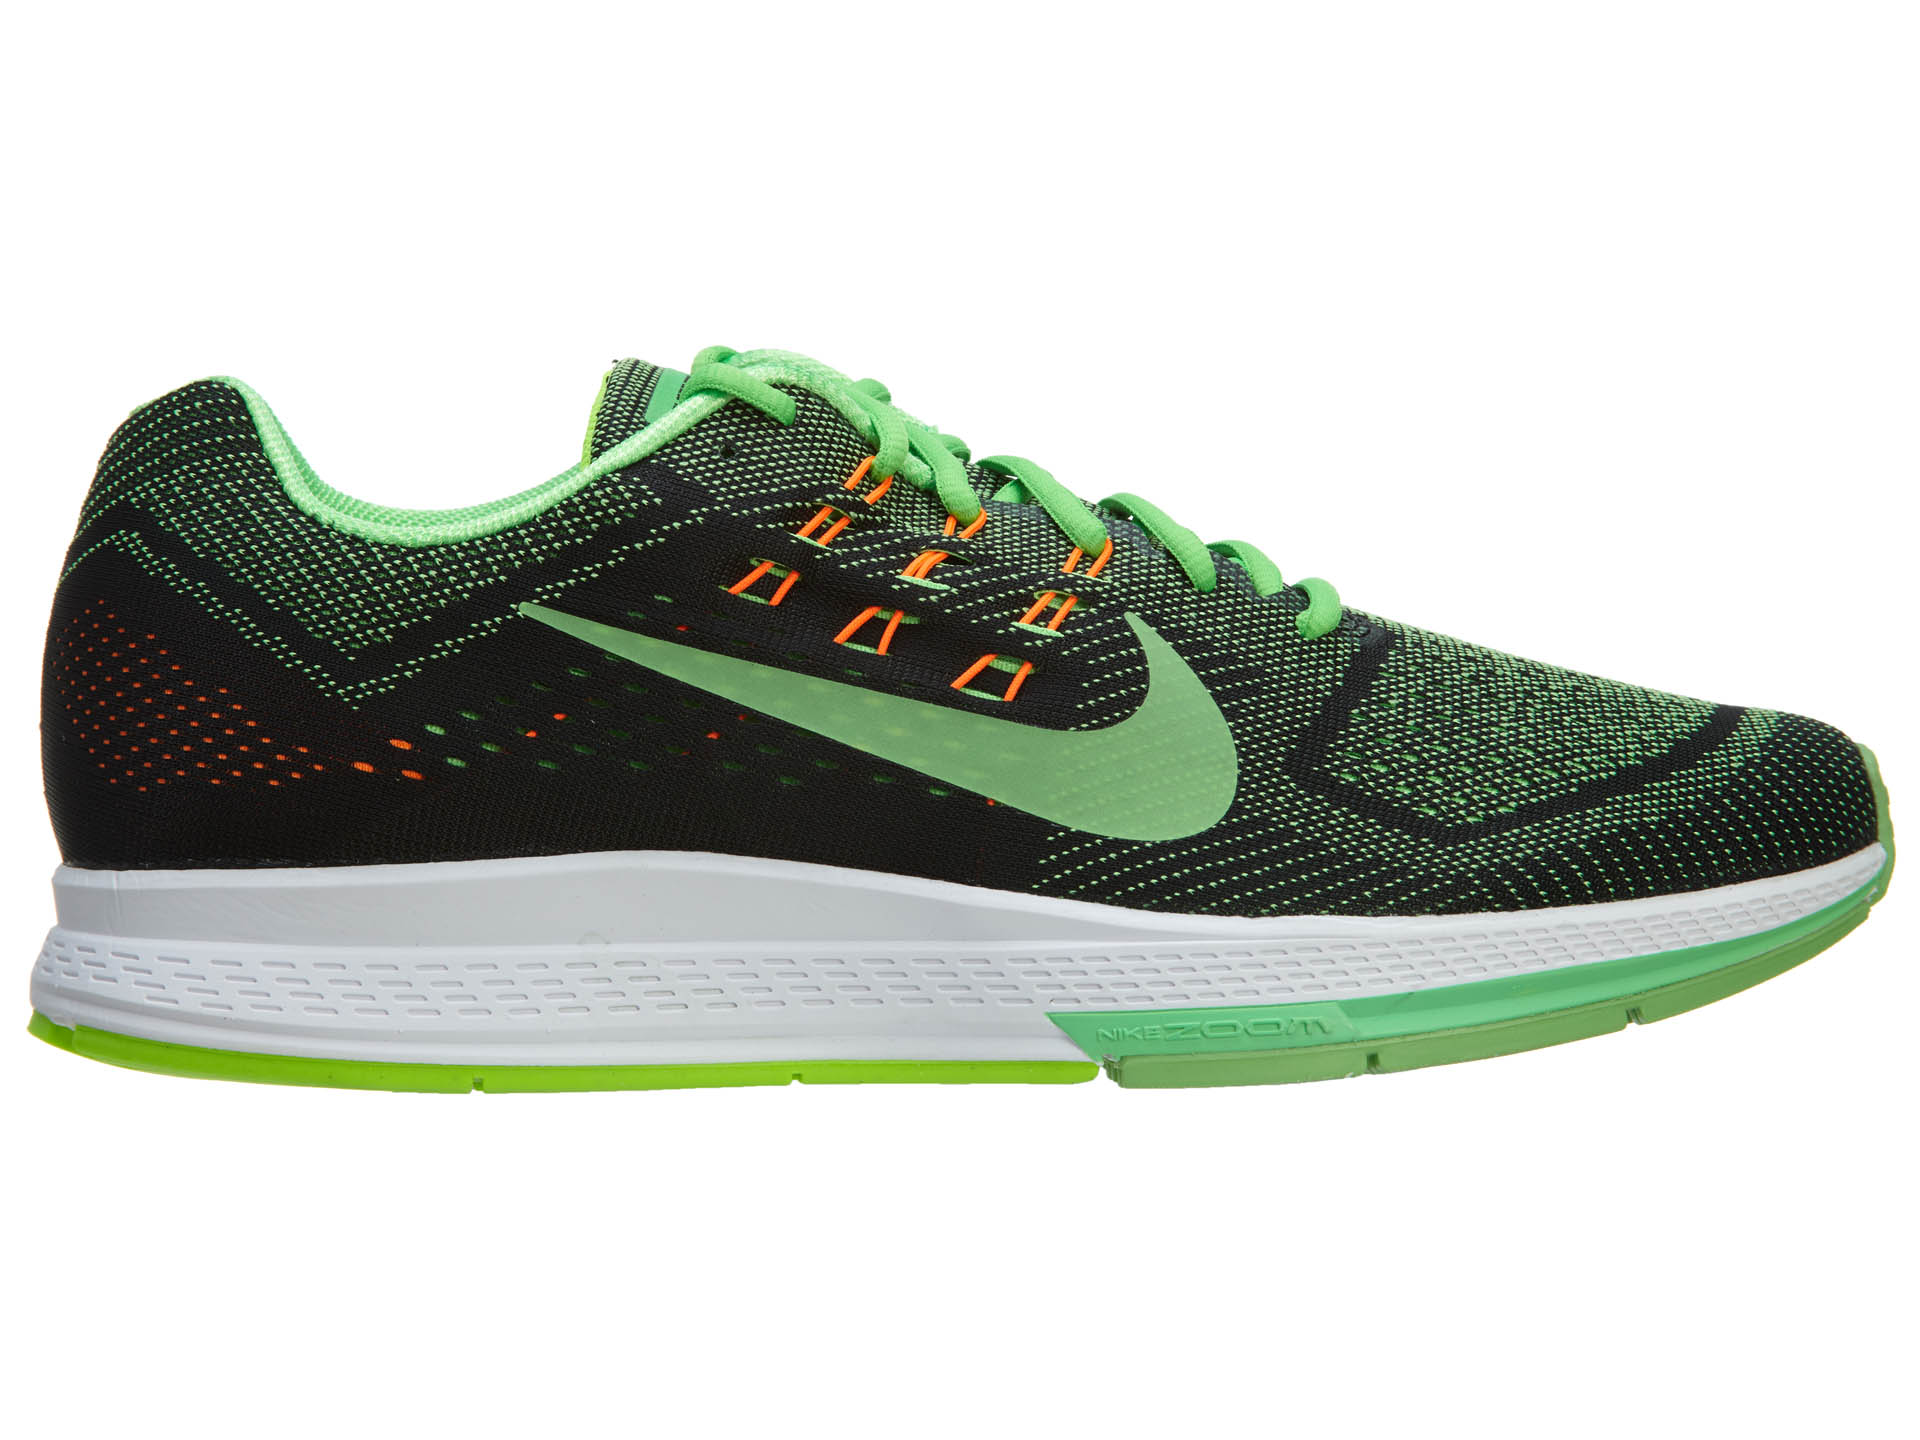 best website a31f0 971bf ... order nike zoom structure 18 flash mens trainers walmart 806d7 36b74